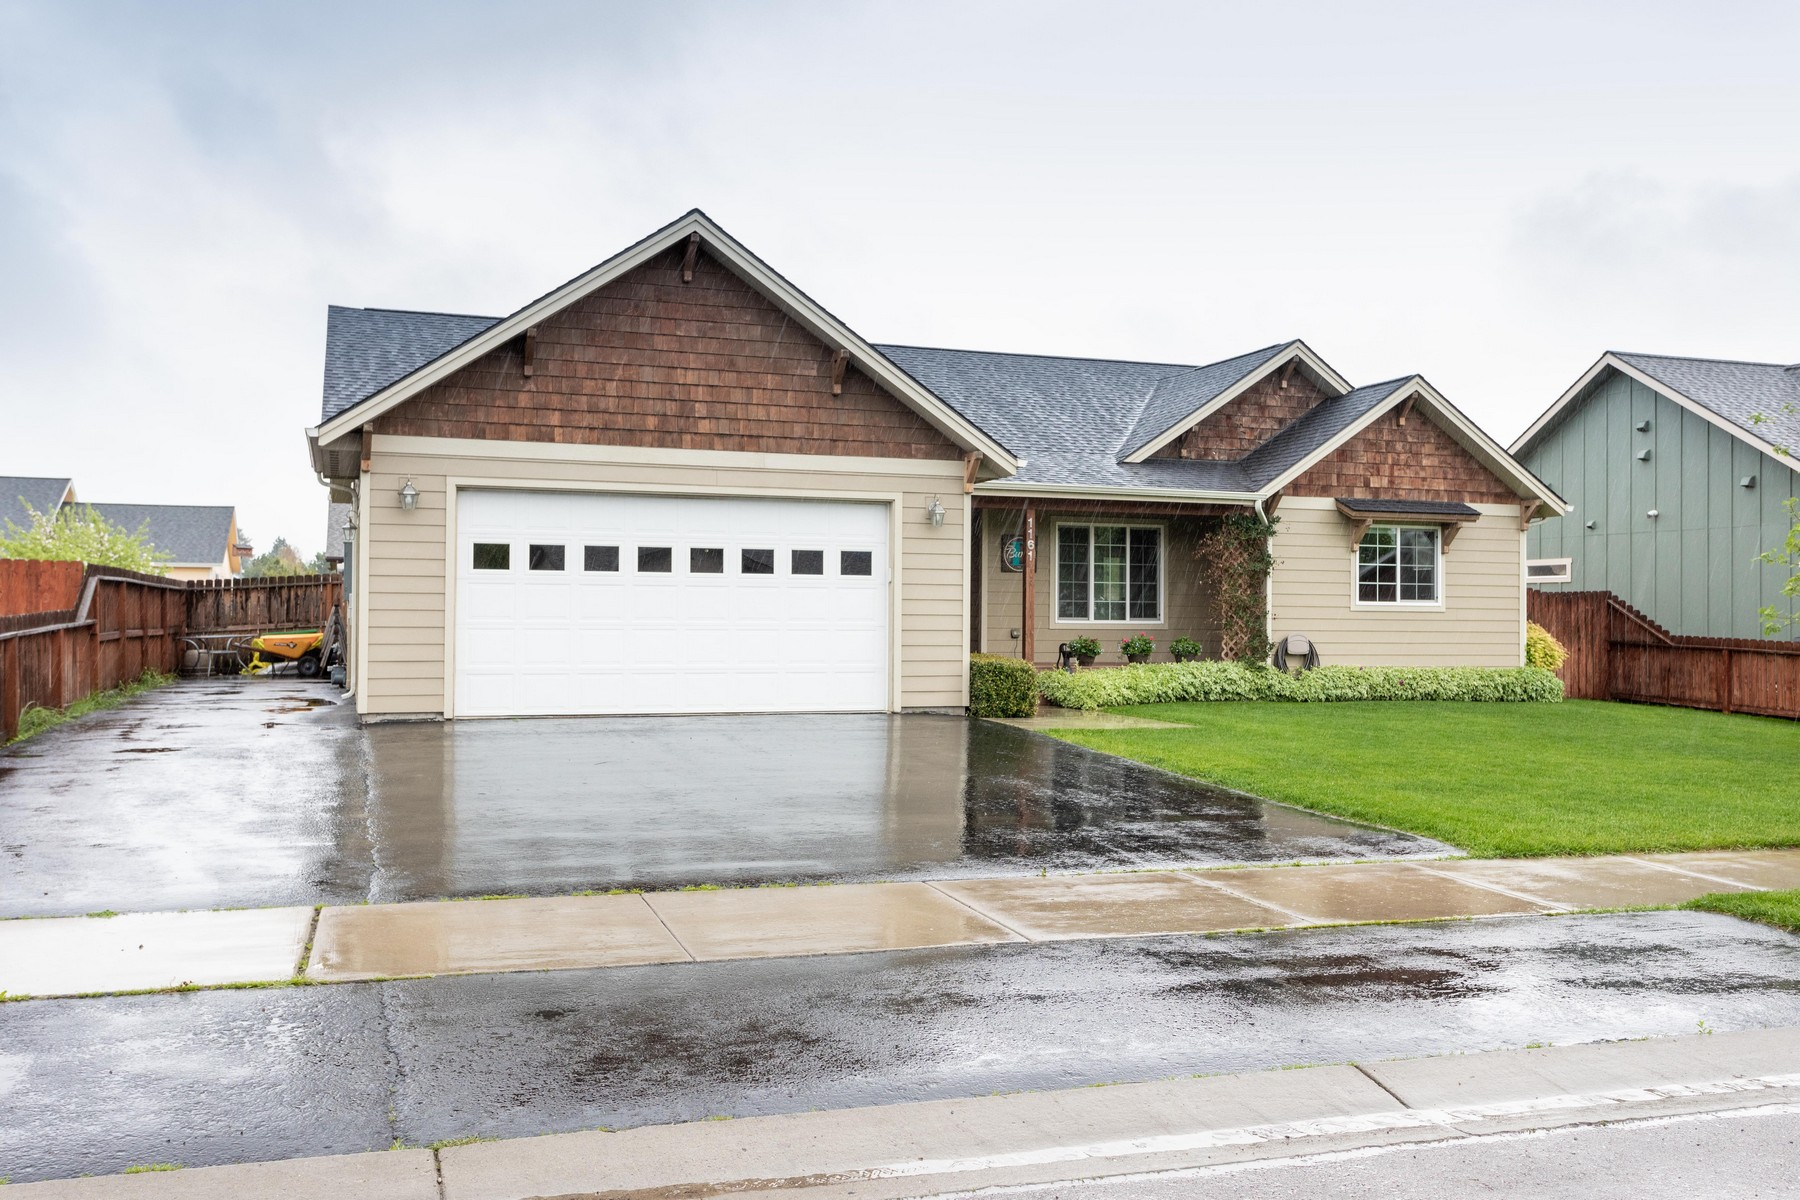 Single Family Homes for Sale at Columbia Falls Rancher 1161 16th Avenue West Columbia Falls, Montana 59912 United States